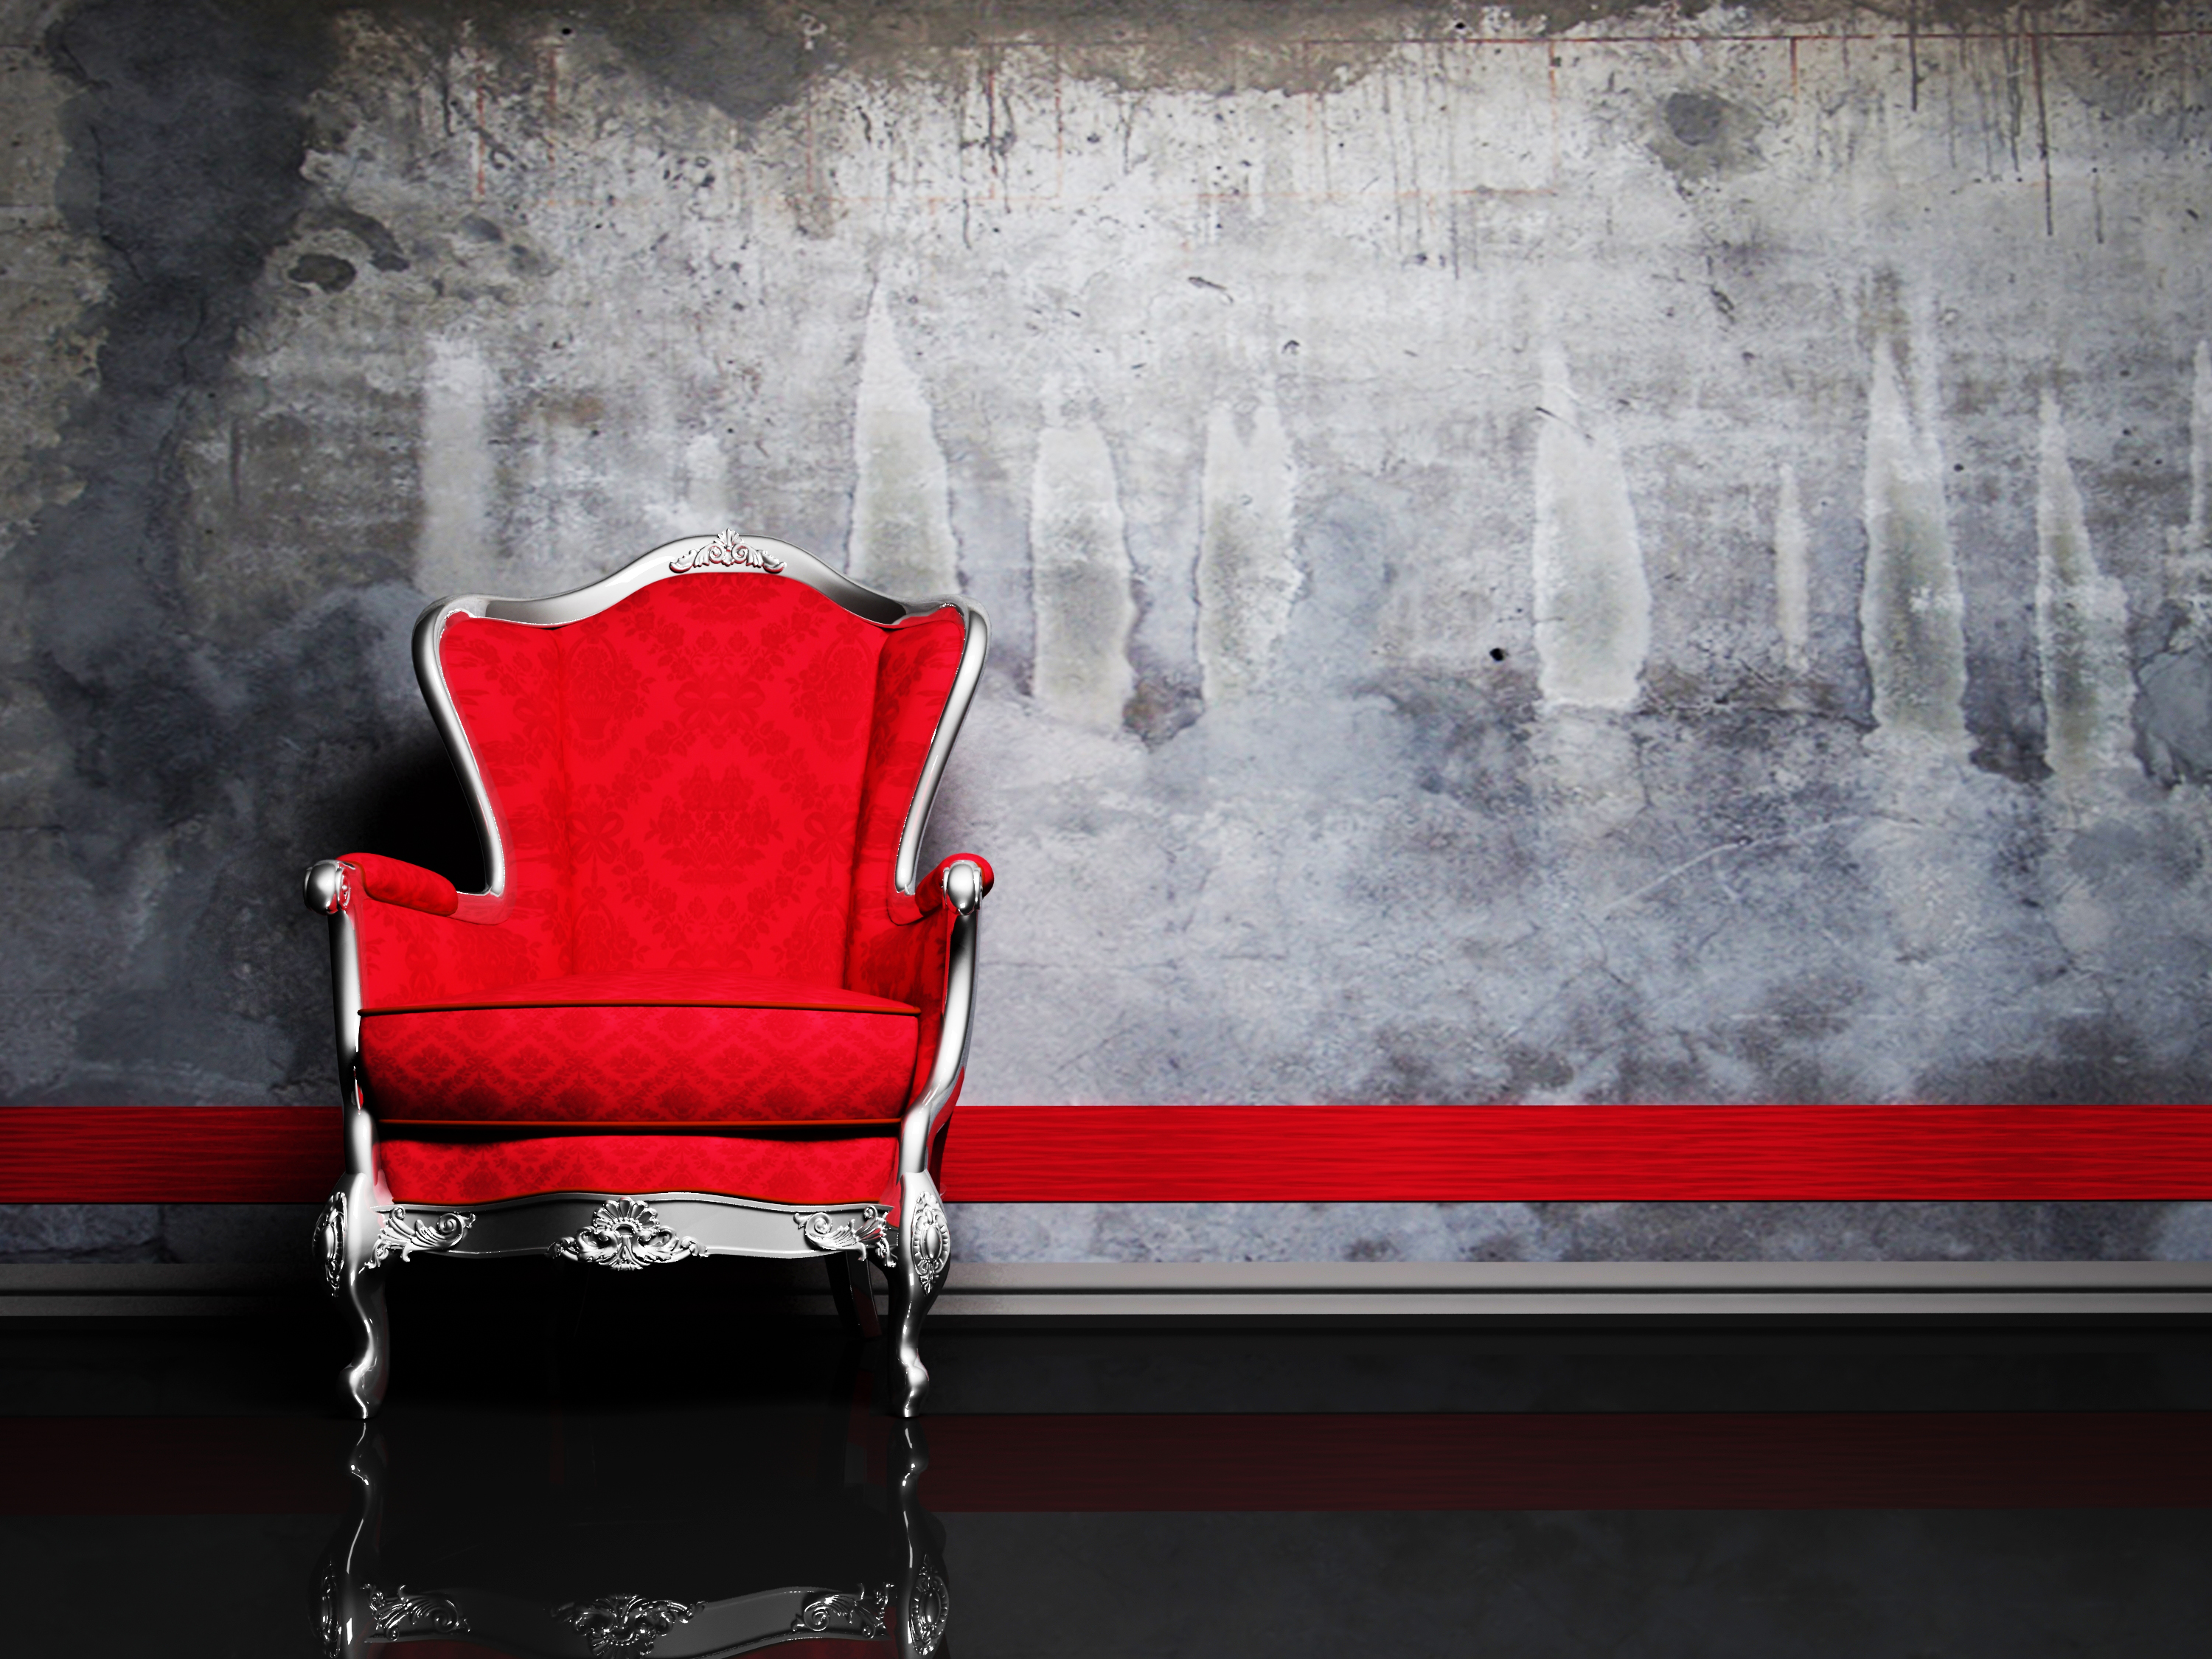 This is a modern interior with a red classic armchair on the dirty background